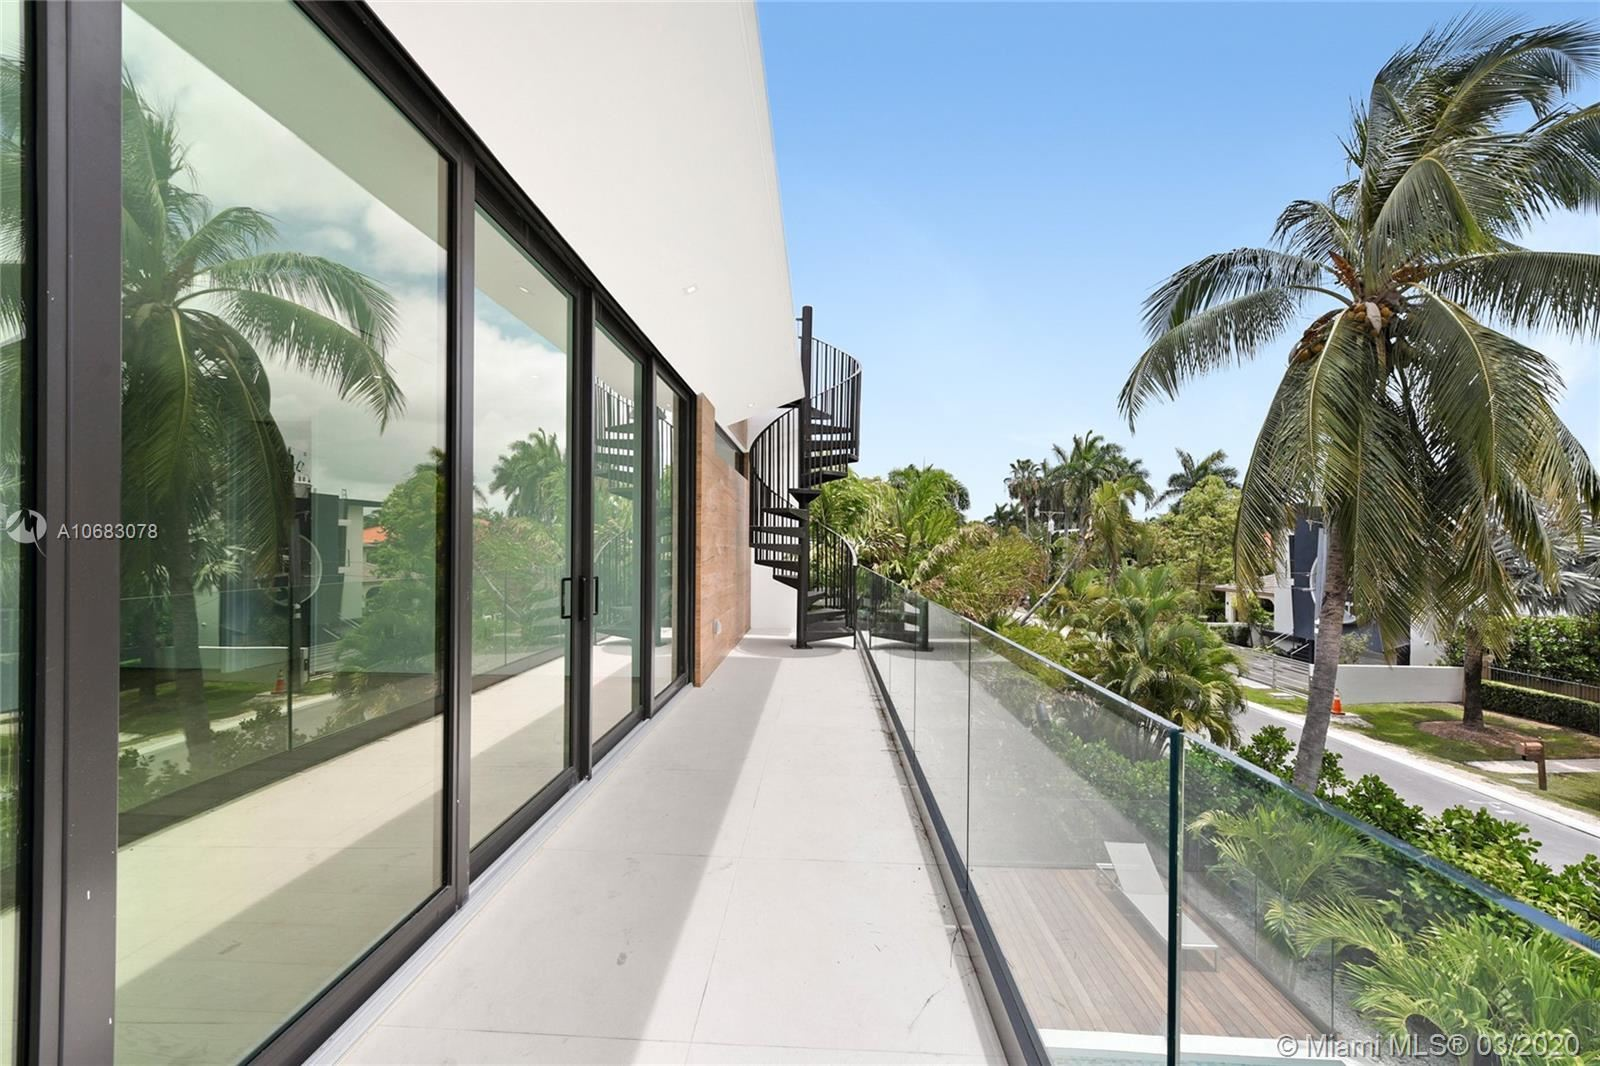 Photo 19 of Listing MLS a10683078 in 272 Palm Ave Miami Beach FL 33139